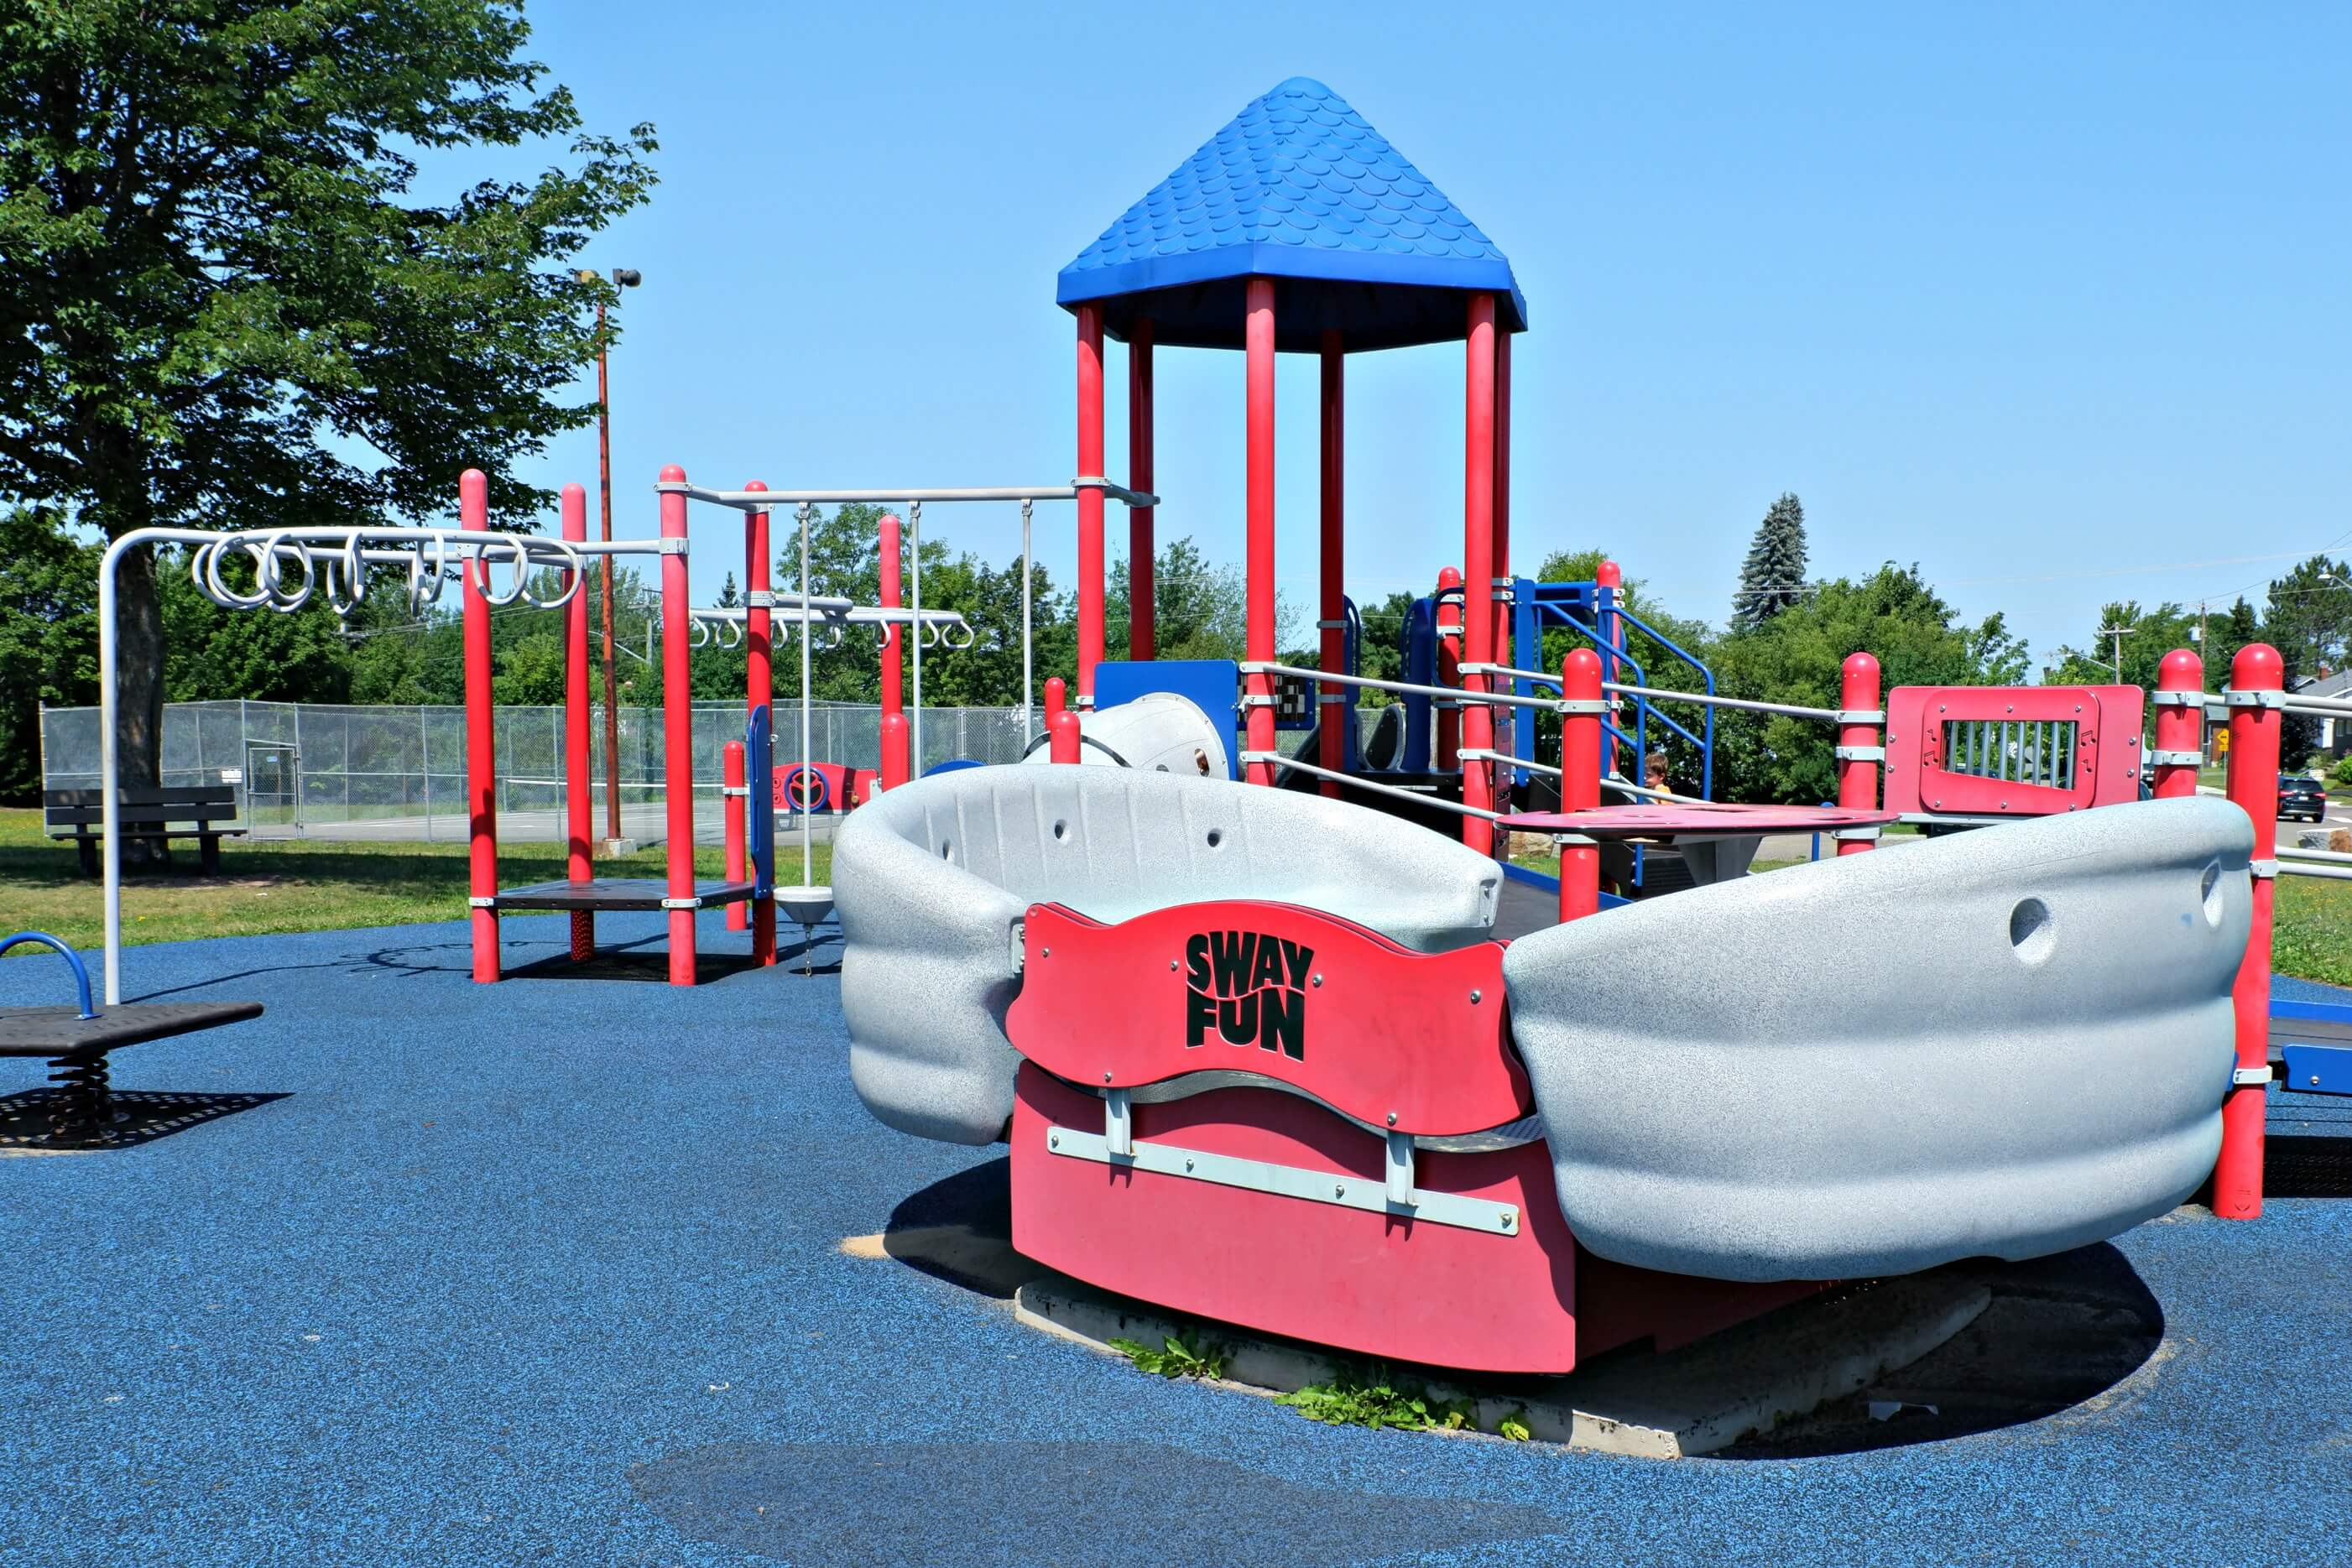 riverview patricia park tot lot accessible playground pickle planet sway fun